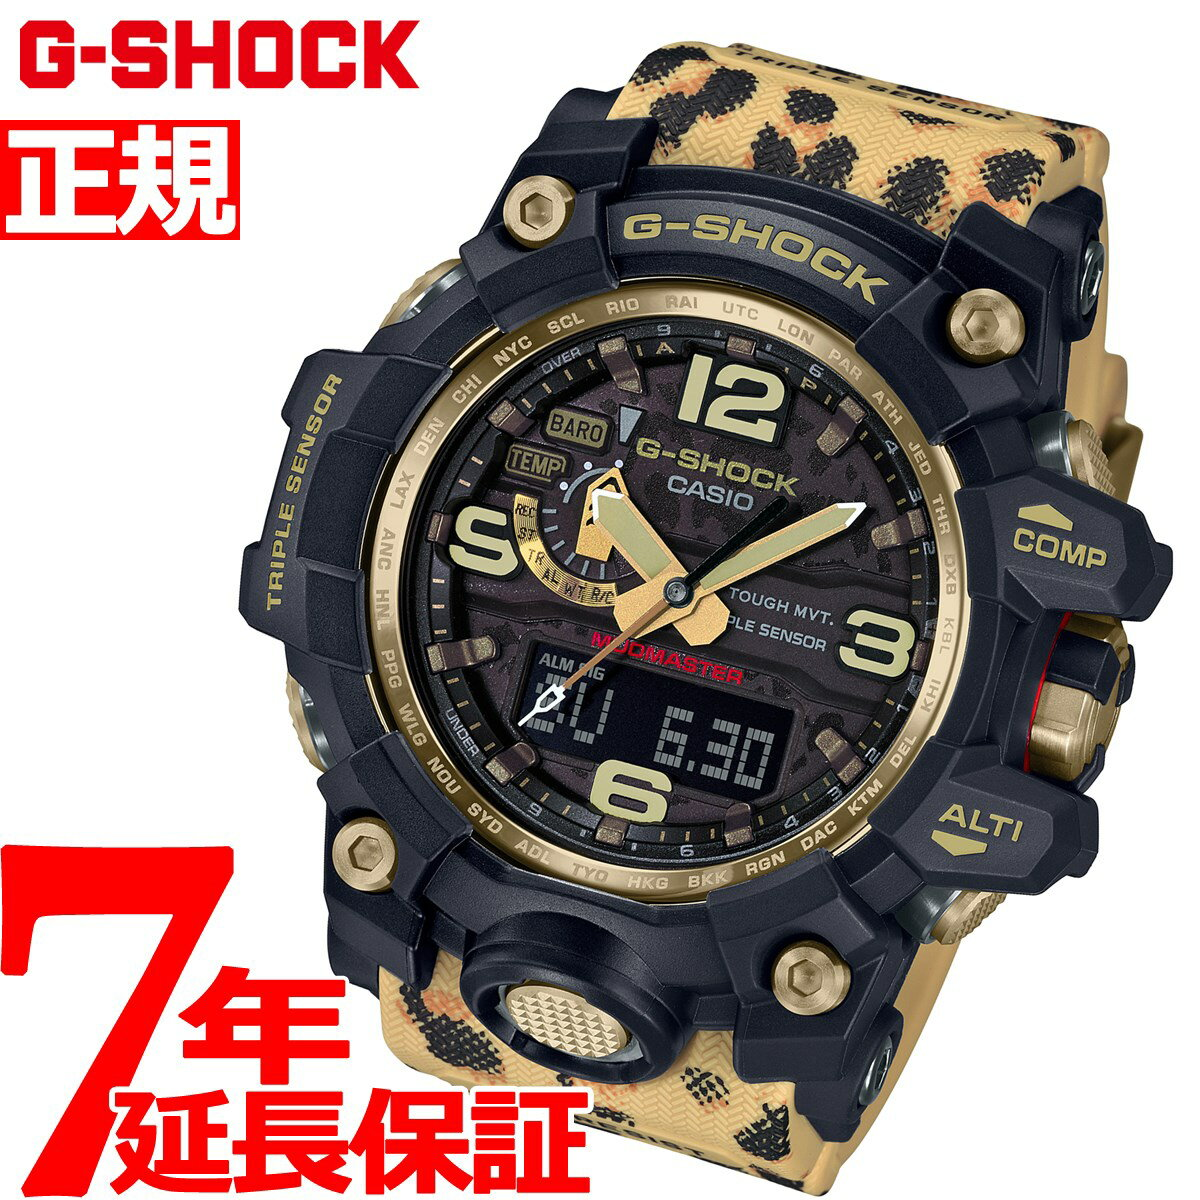 腕時計, メンズ腕時計 2000OFF61G-SHOCK G CASIO WILDLIFE PROMISING Love The Sea And The Earth GWG-1000WLP-1AJR